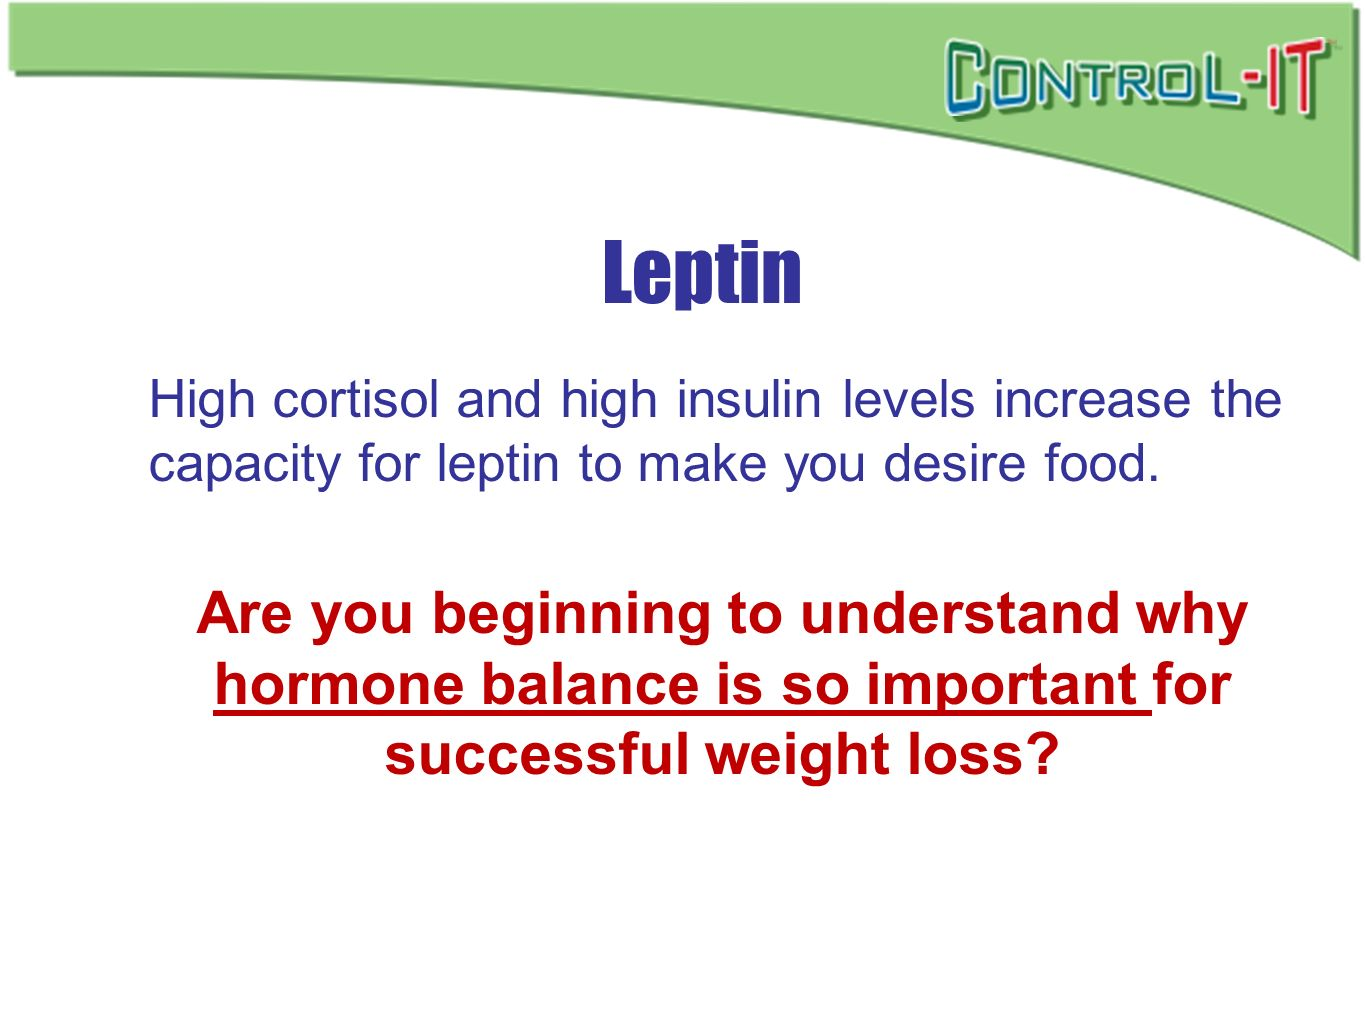 LeptinHigh cortisol and high insulin levels increase the capacity for leptin to make you desire food.